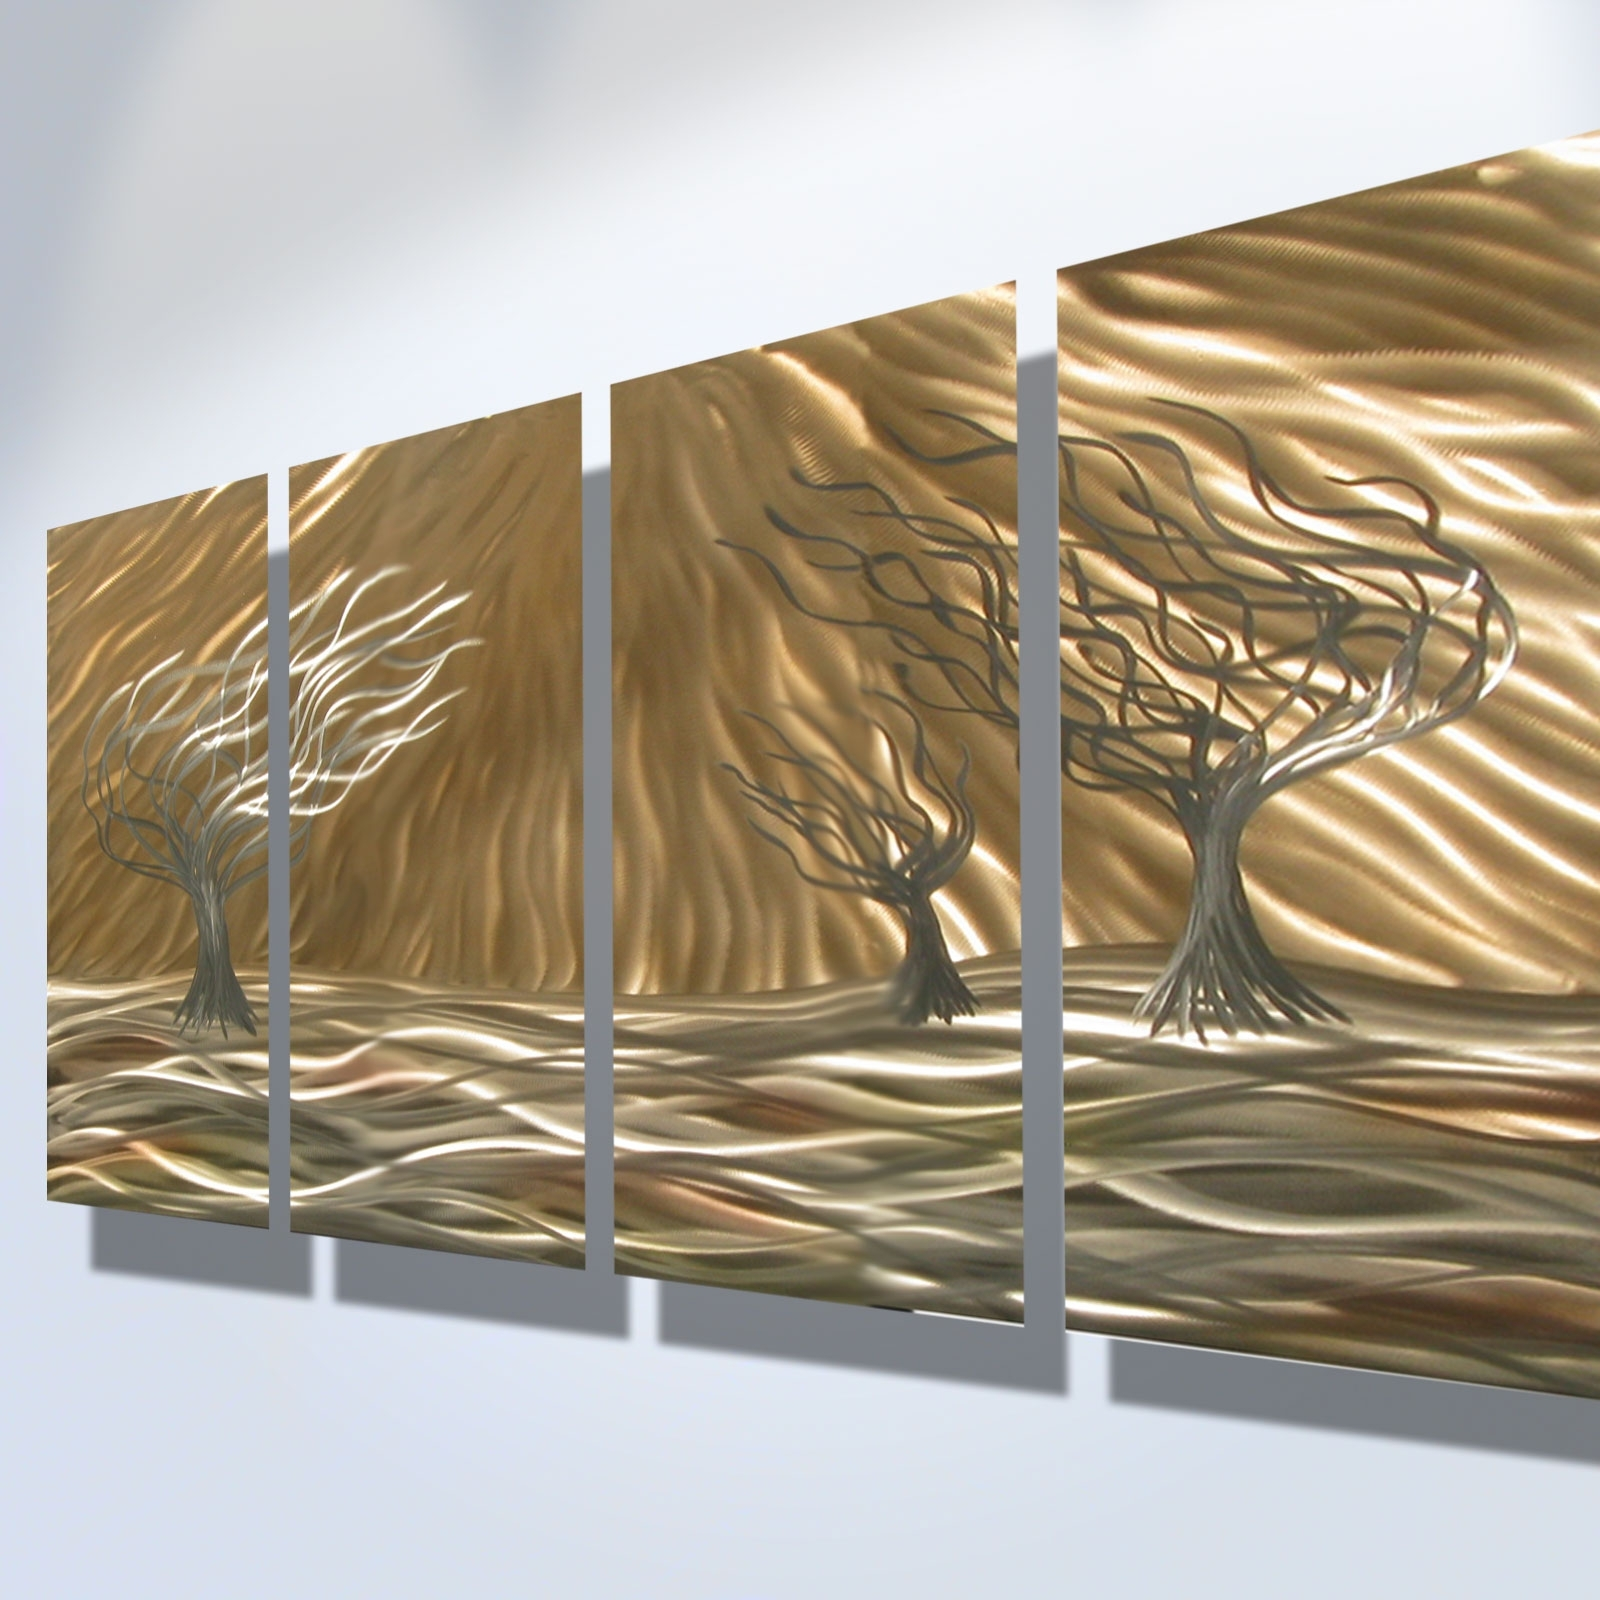 3 Trees 4 Panel – Abstract Metal Wall Art Contemporary Modern Decor With Regard To Most Recently Released Metal Wall Art Decors (Gallery 15 of 15)